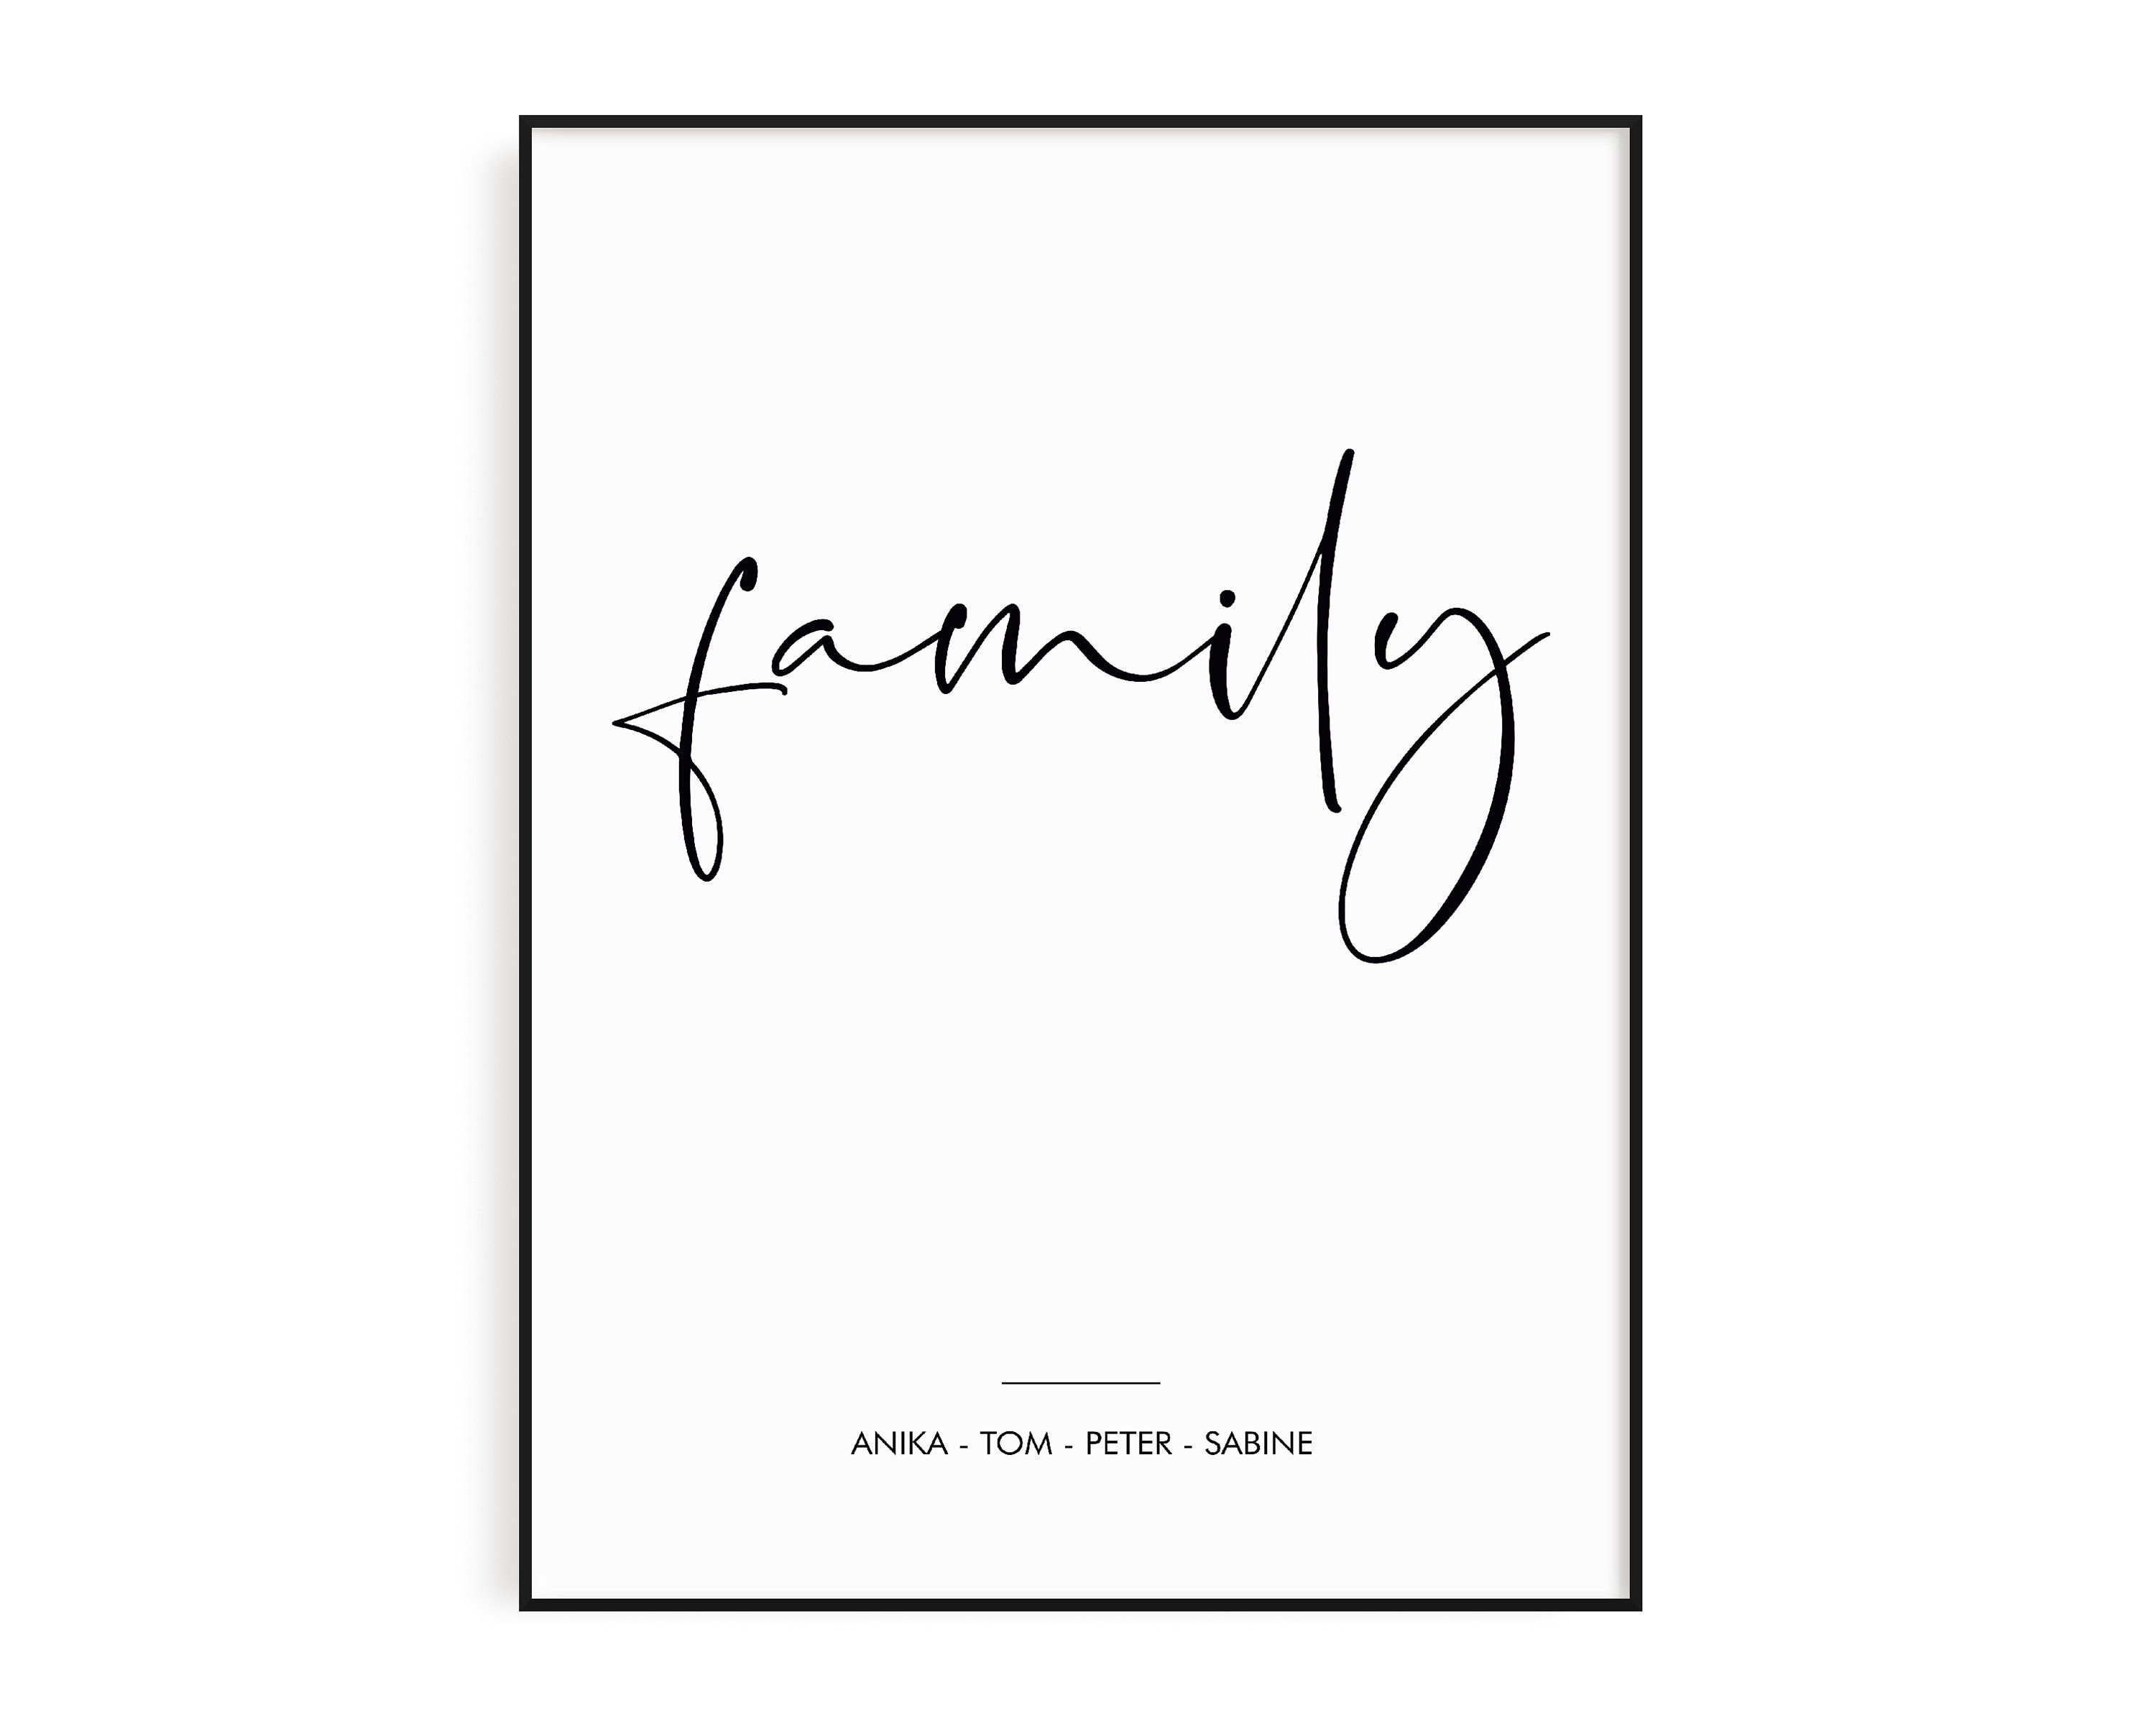 Living Room Poster Personalized Black And White Poster Gift For Family Poster Family Poster Love Poster Scandinavian Poster Bilder Zum Ausmalen Poster Drucken Poster